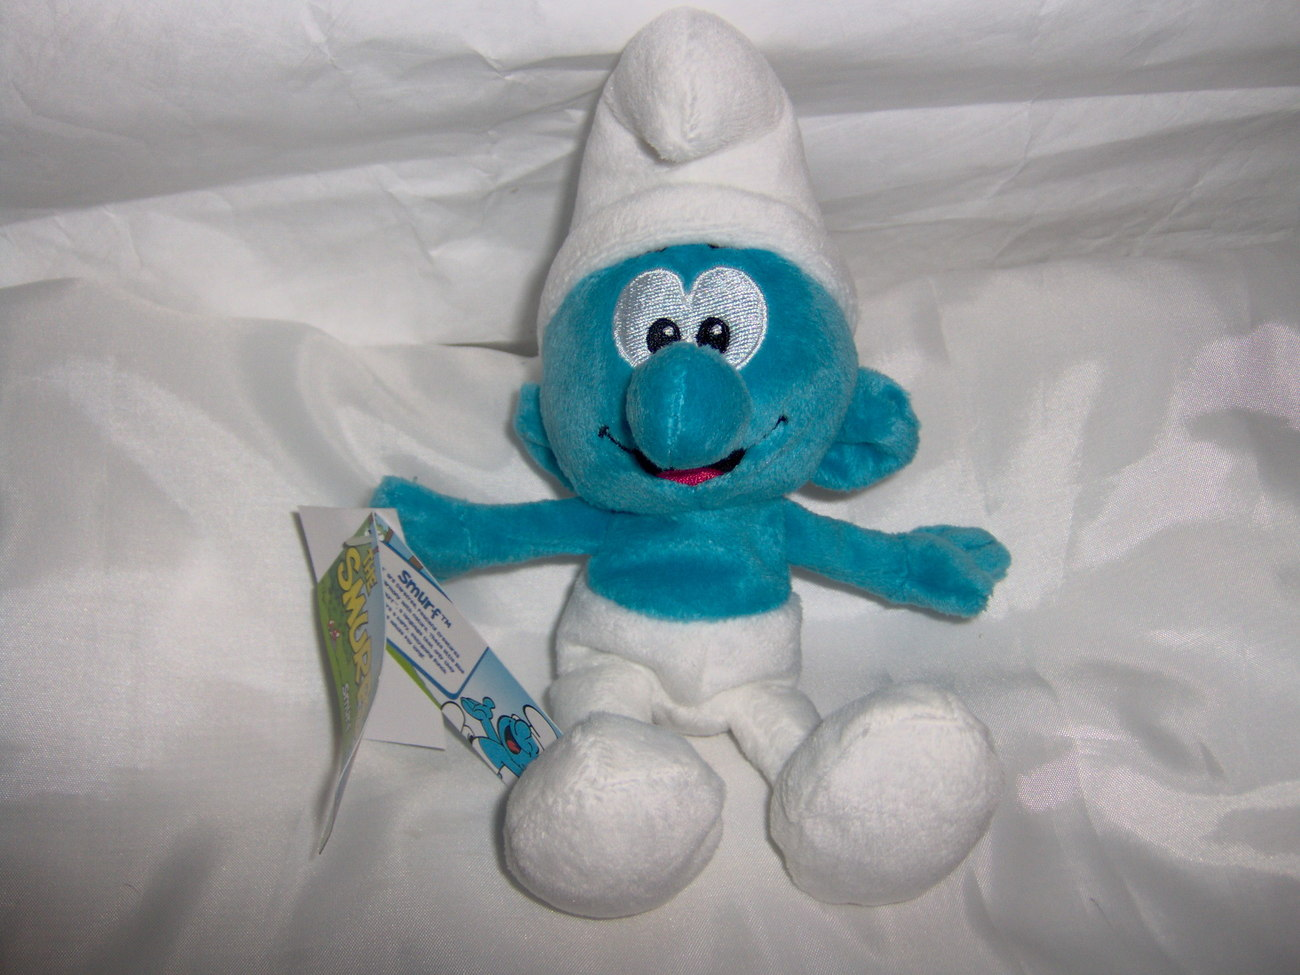 New with Tags - The Smurfs Plush Toy Smurf